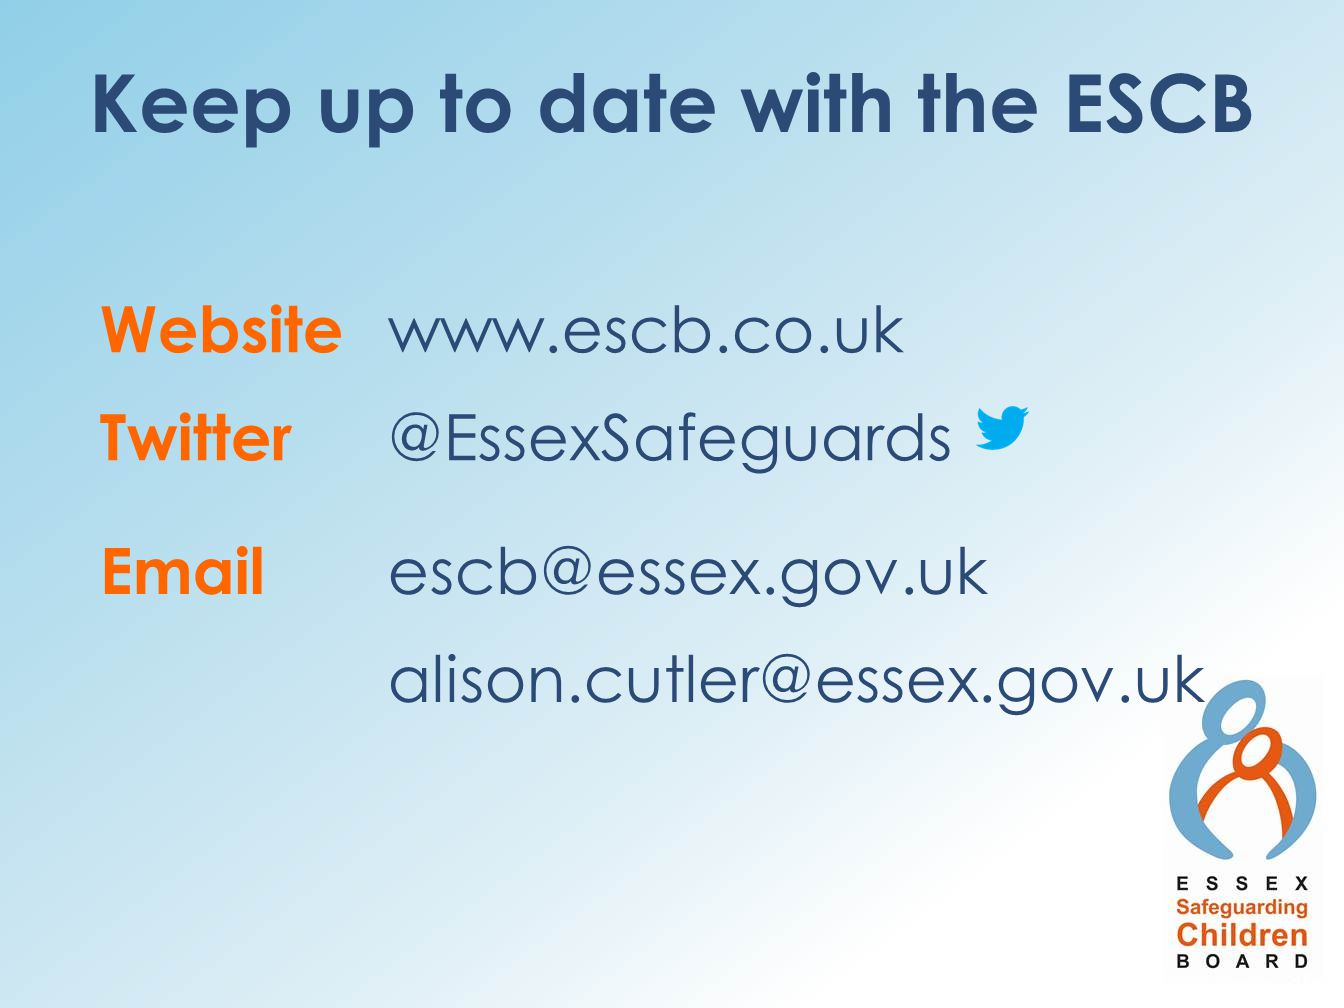 Keep up to date with the ESCB